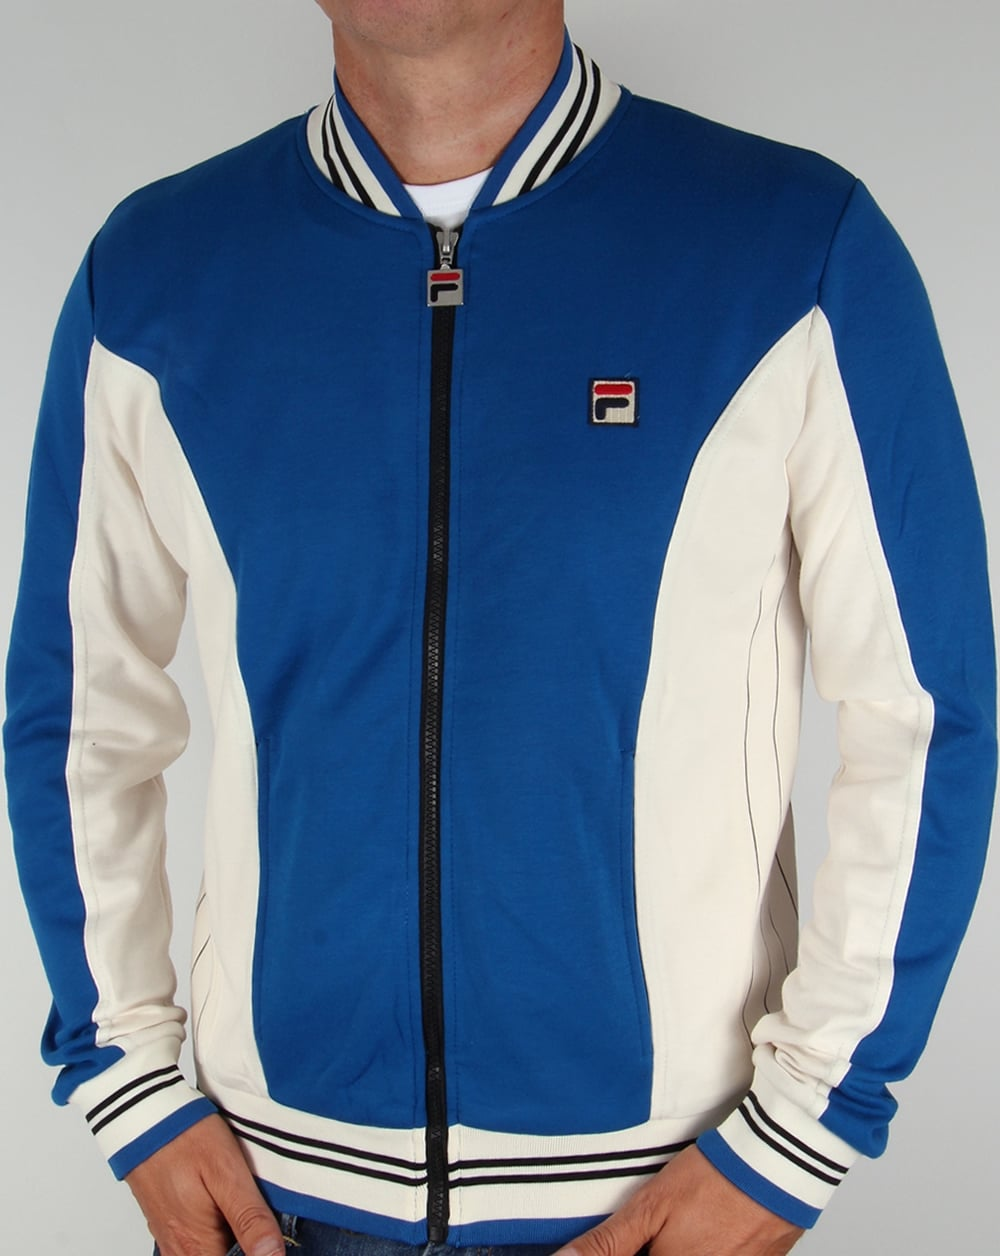 fila tracksuit mens 2017 Sale,up to 64% Discounts